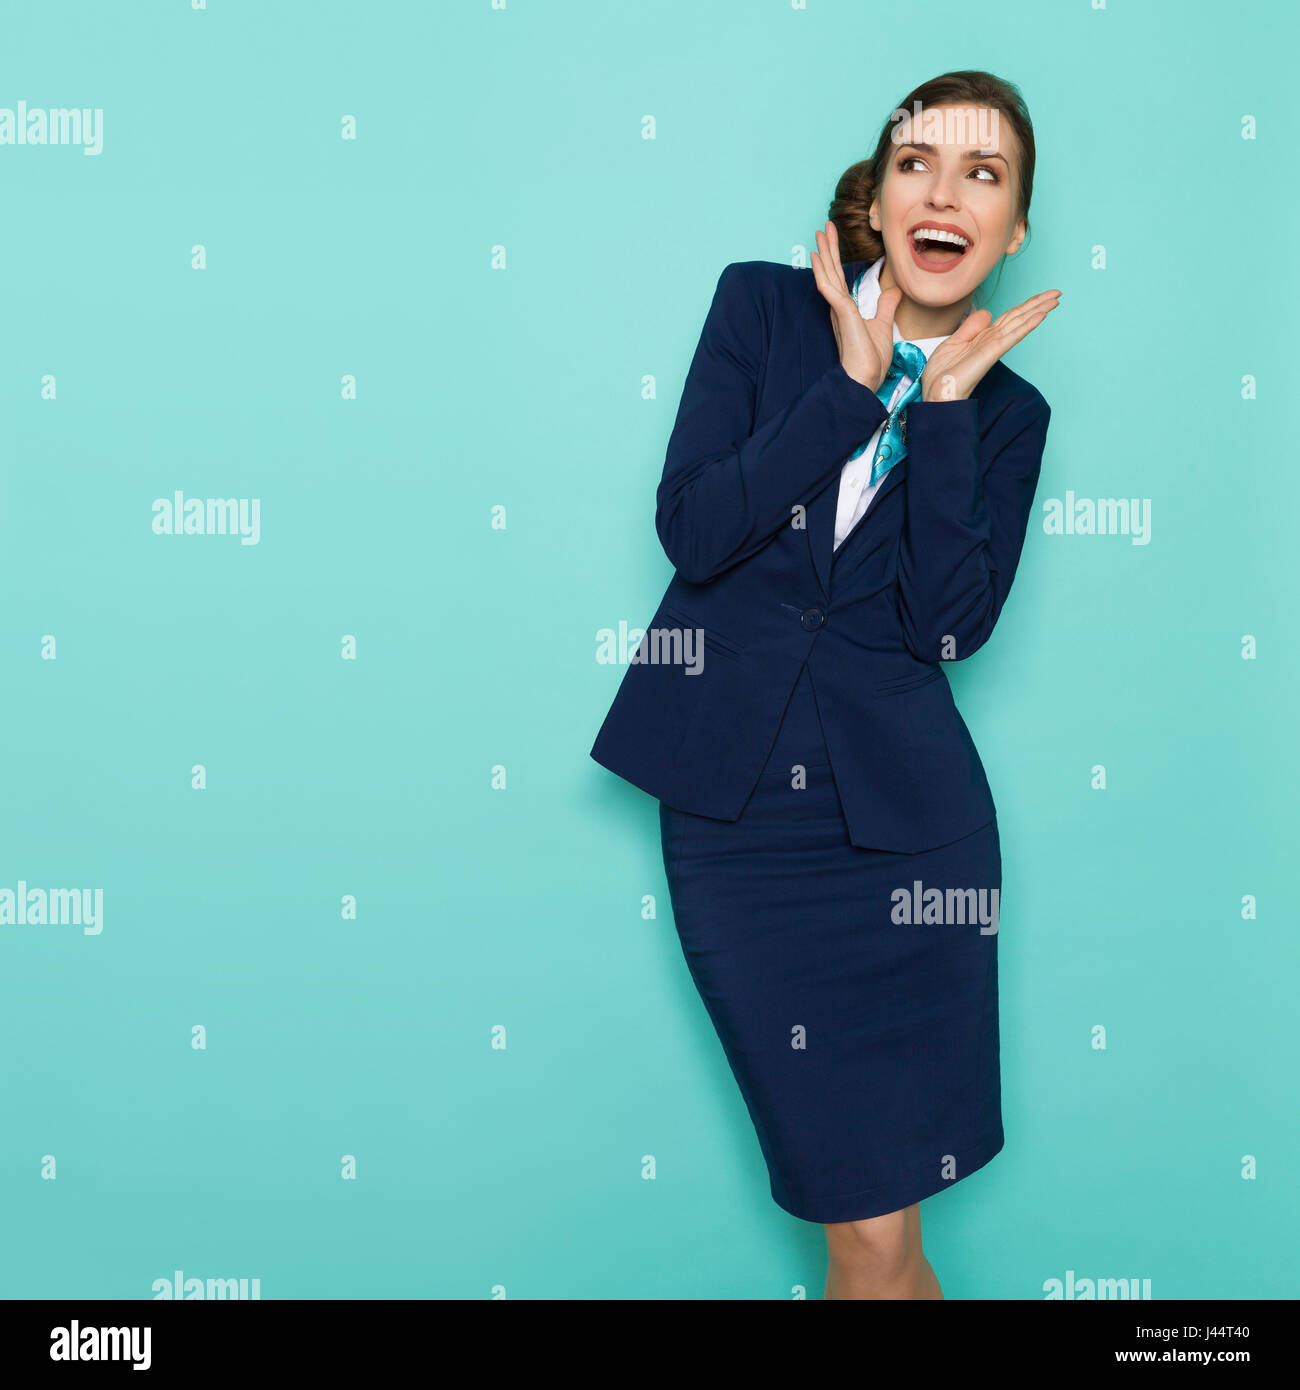 Happy young businesswoman in blue suit and turquoise scarf is standing with hands raised, shouting and looking away. - Stock Image